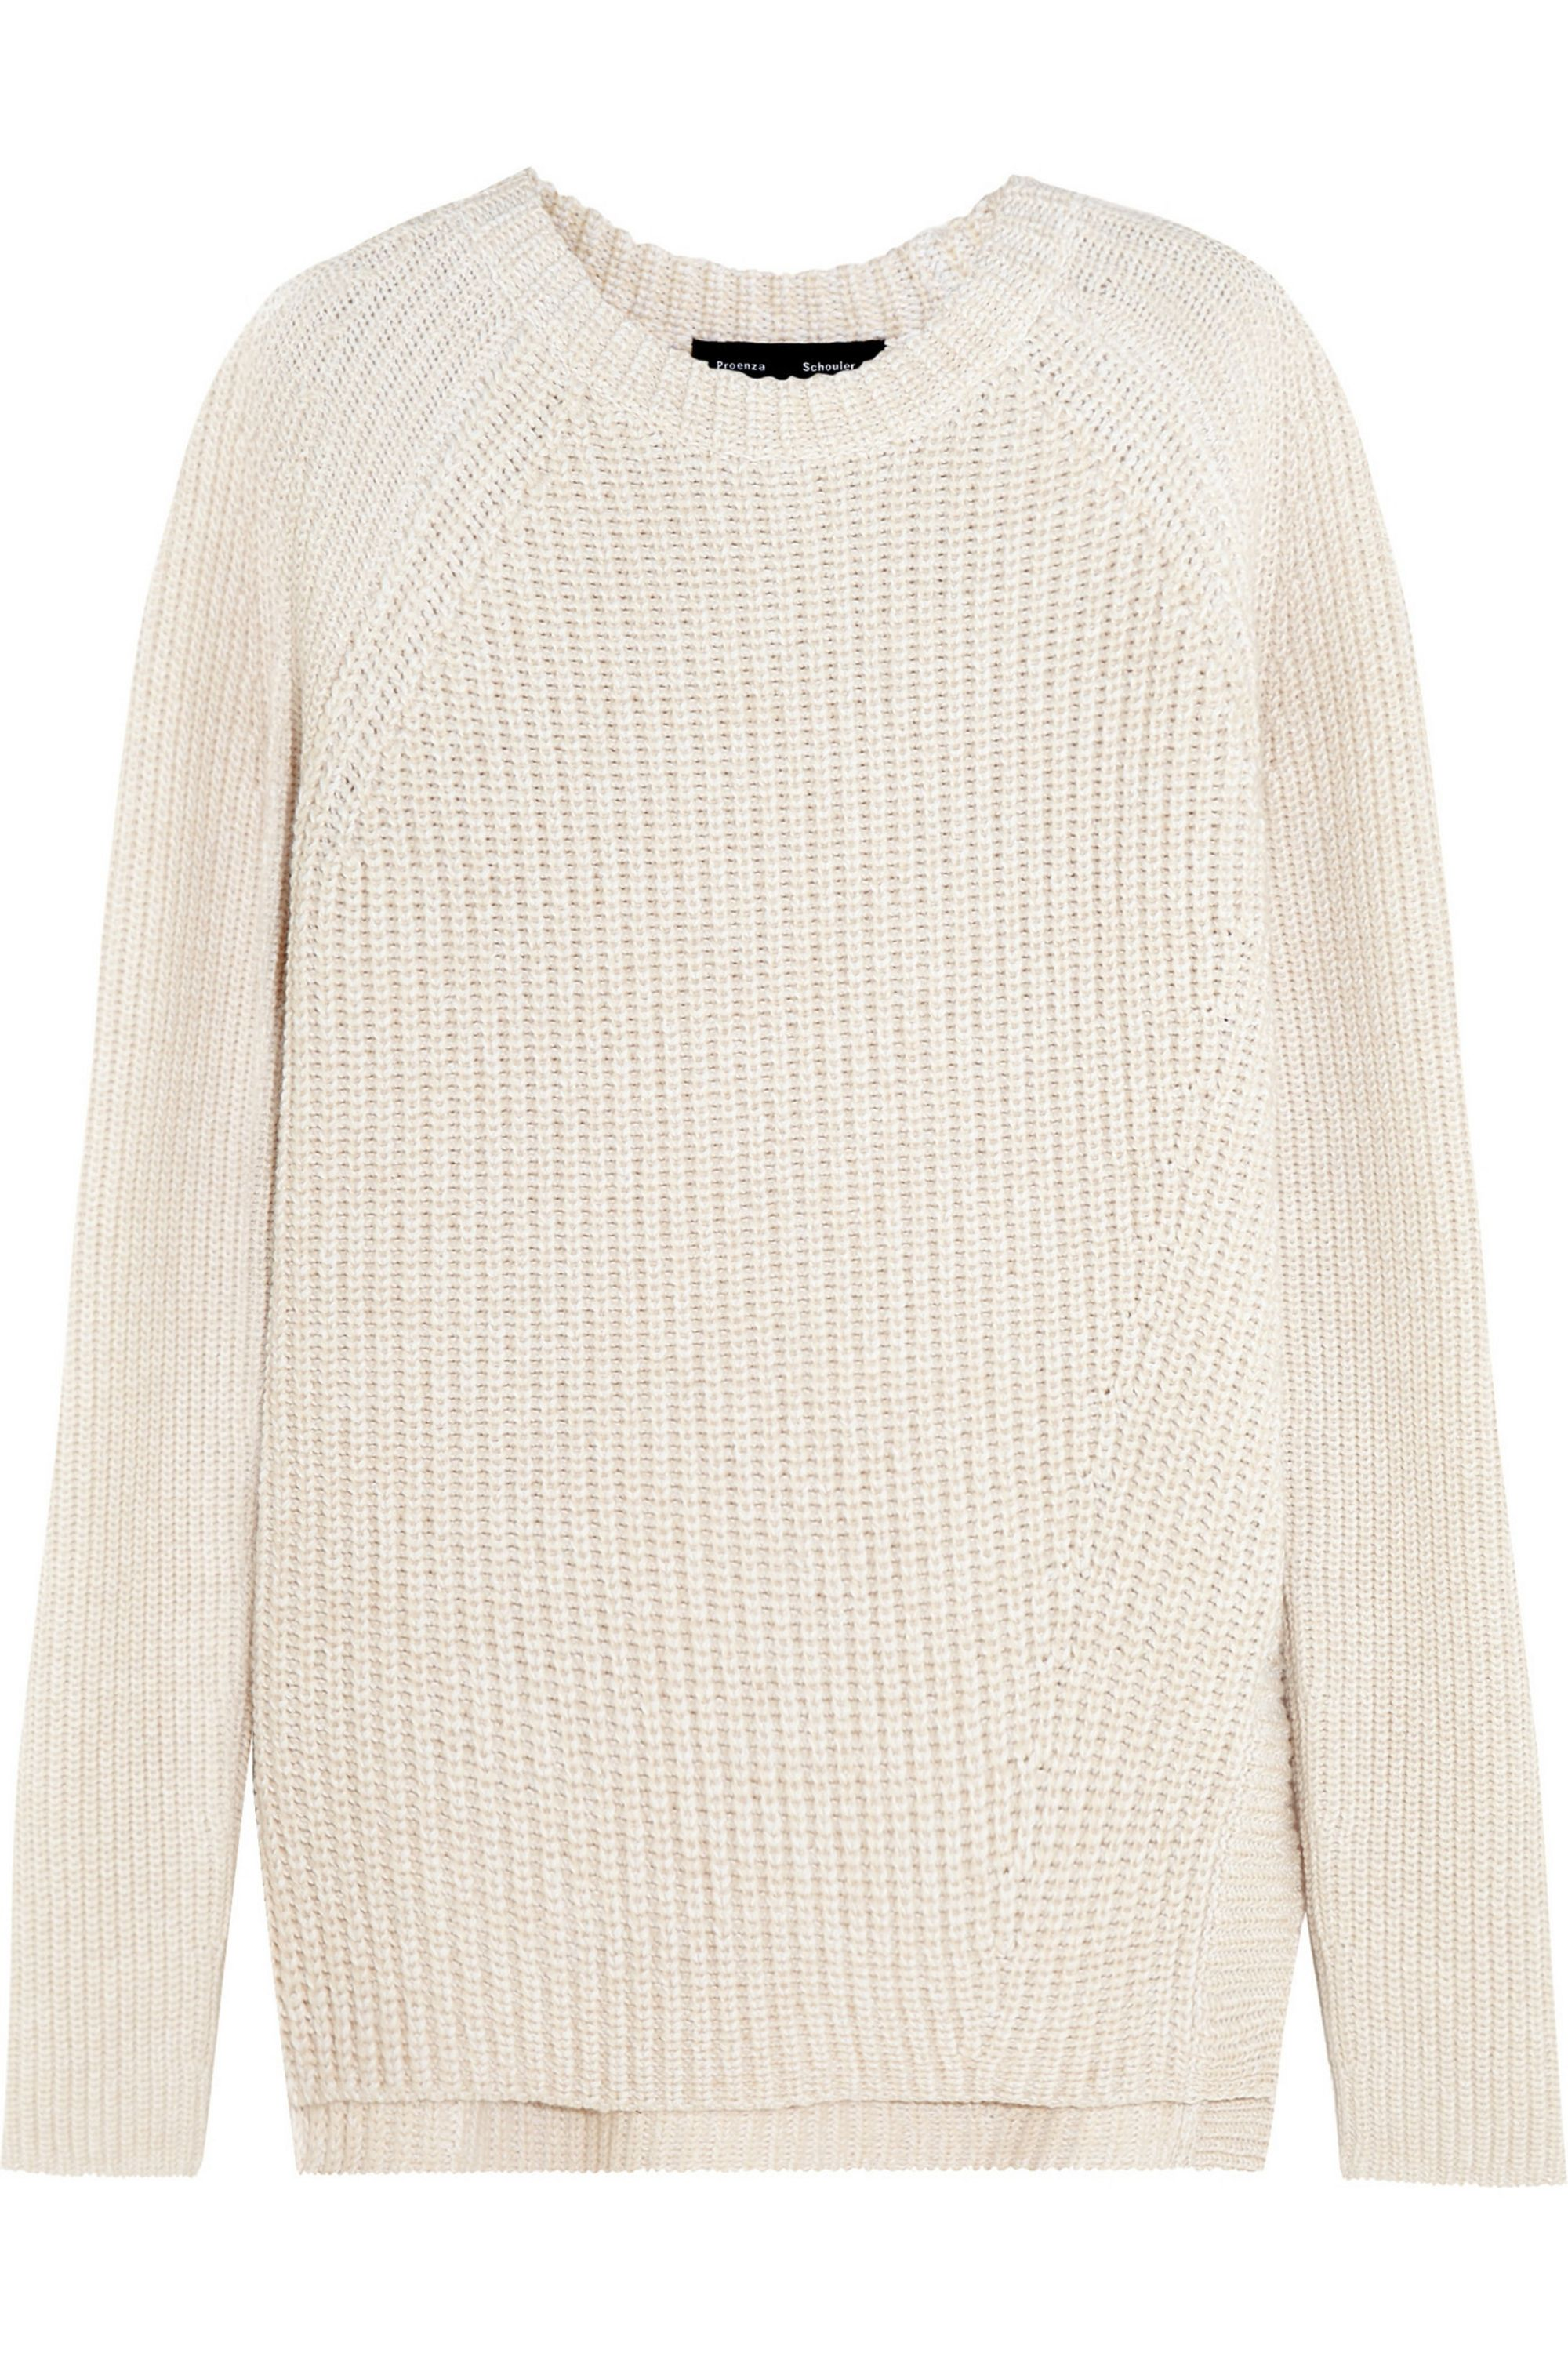 Proenza Schouler Cotton, cashmere and wool-blend sweater